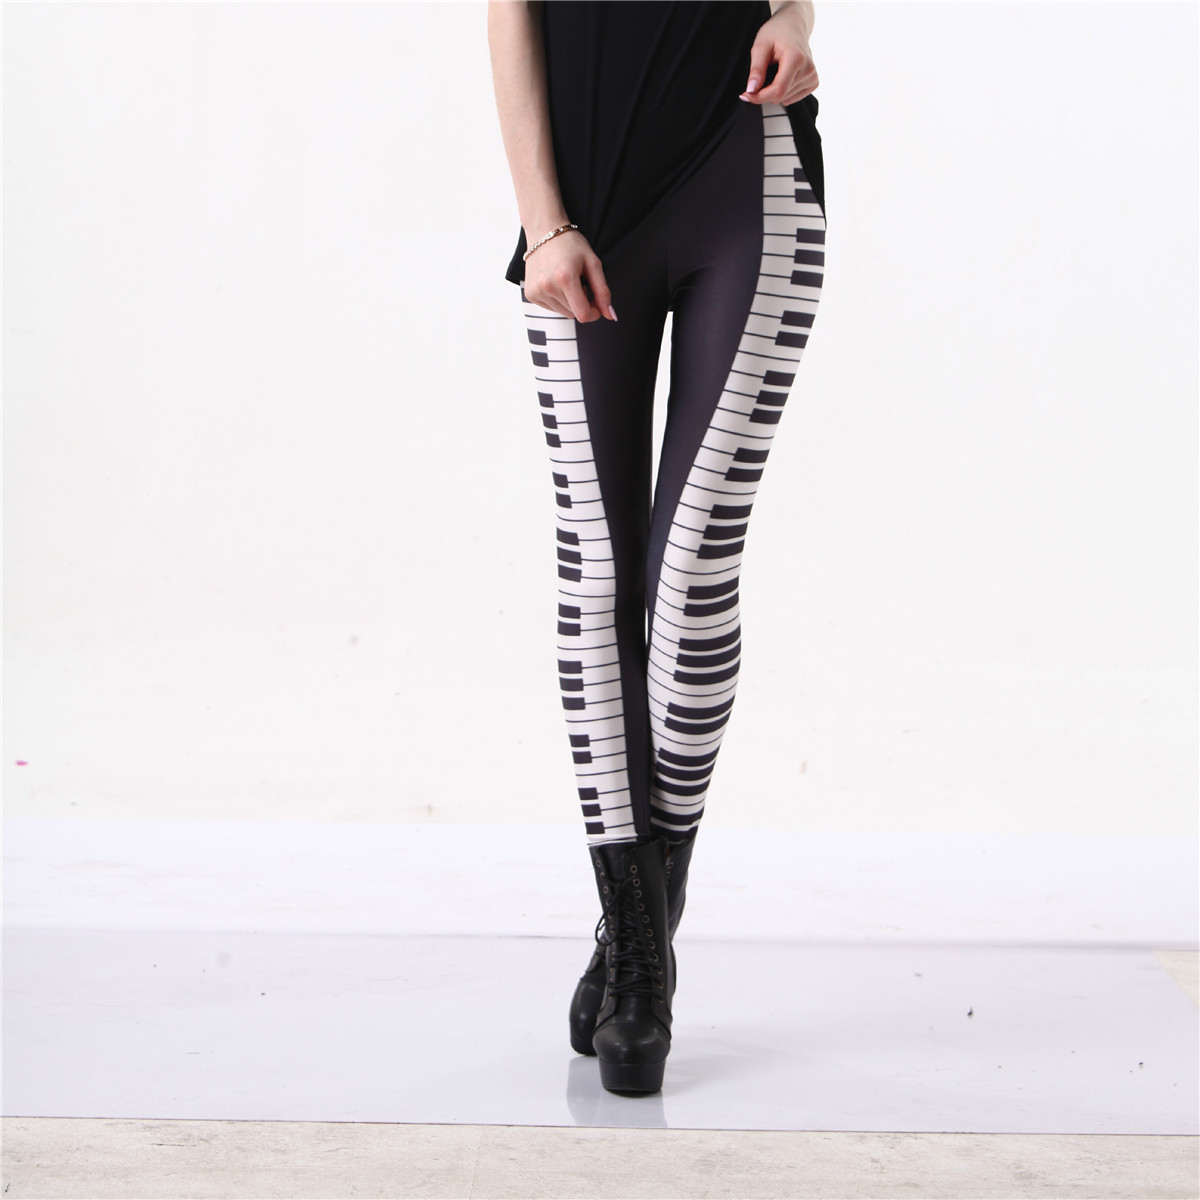 Piano Leggings Black White Stripe  Leg Hot 3D Graphic Printed Music Keys Fitness Leggings Pants Gymwear Funky Capris S-4XL